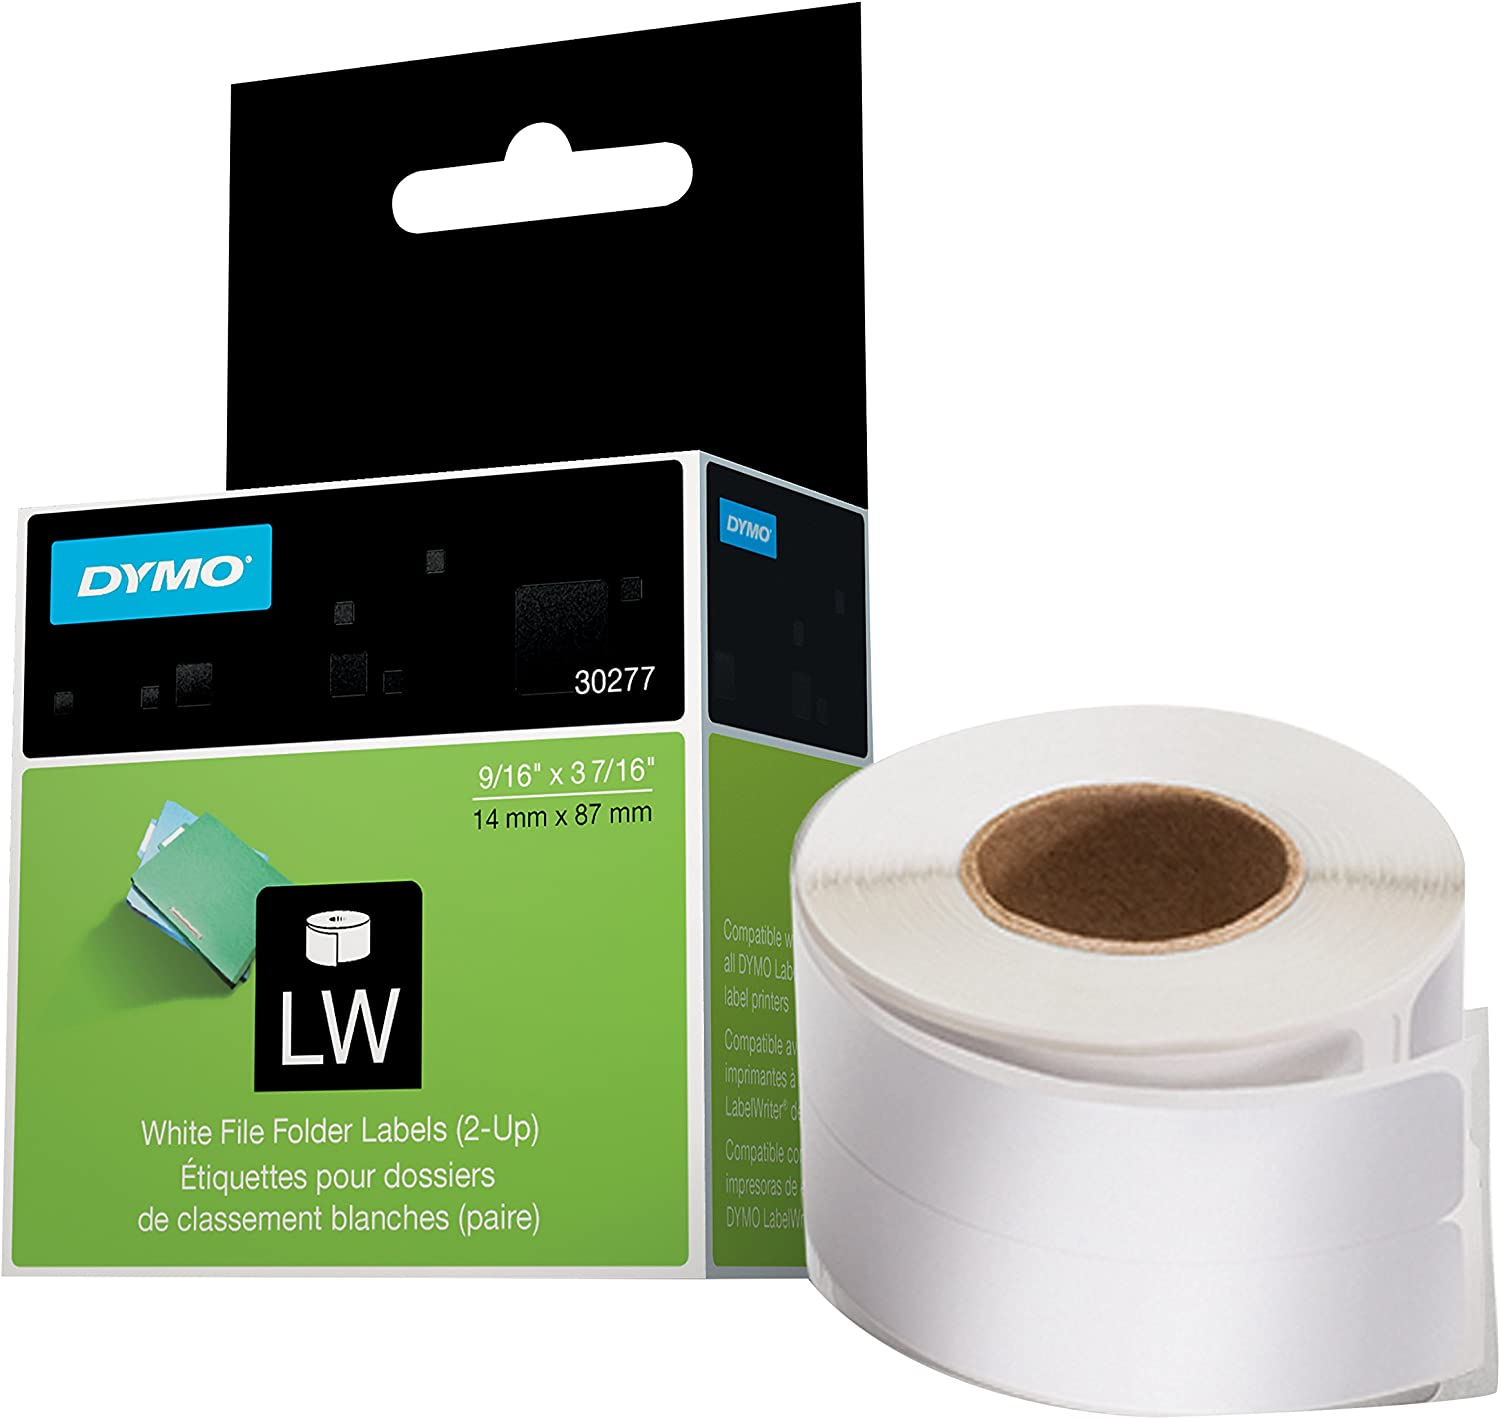 DYMO LW 2-Up File Folder Labels for LabelWriter Label Printers, White, 9/16'' x 3-7/16'', 1 roll of 260 (30377) : Labeling Tape : Office Products